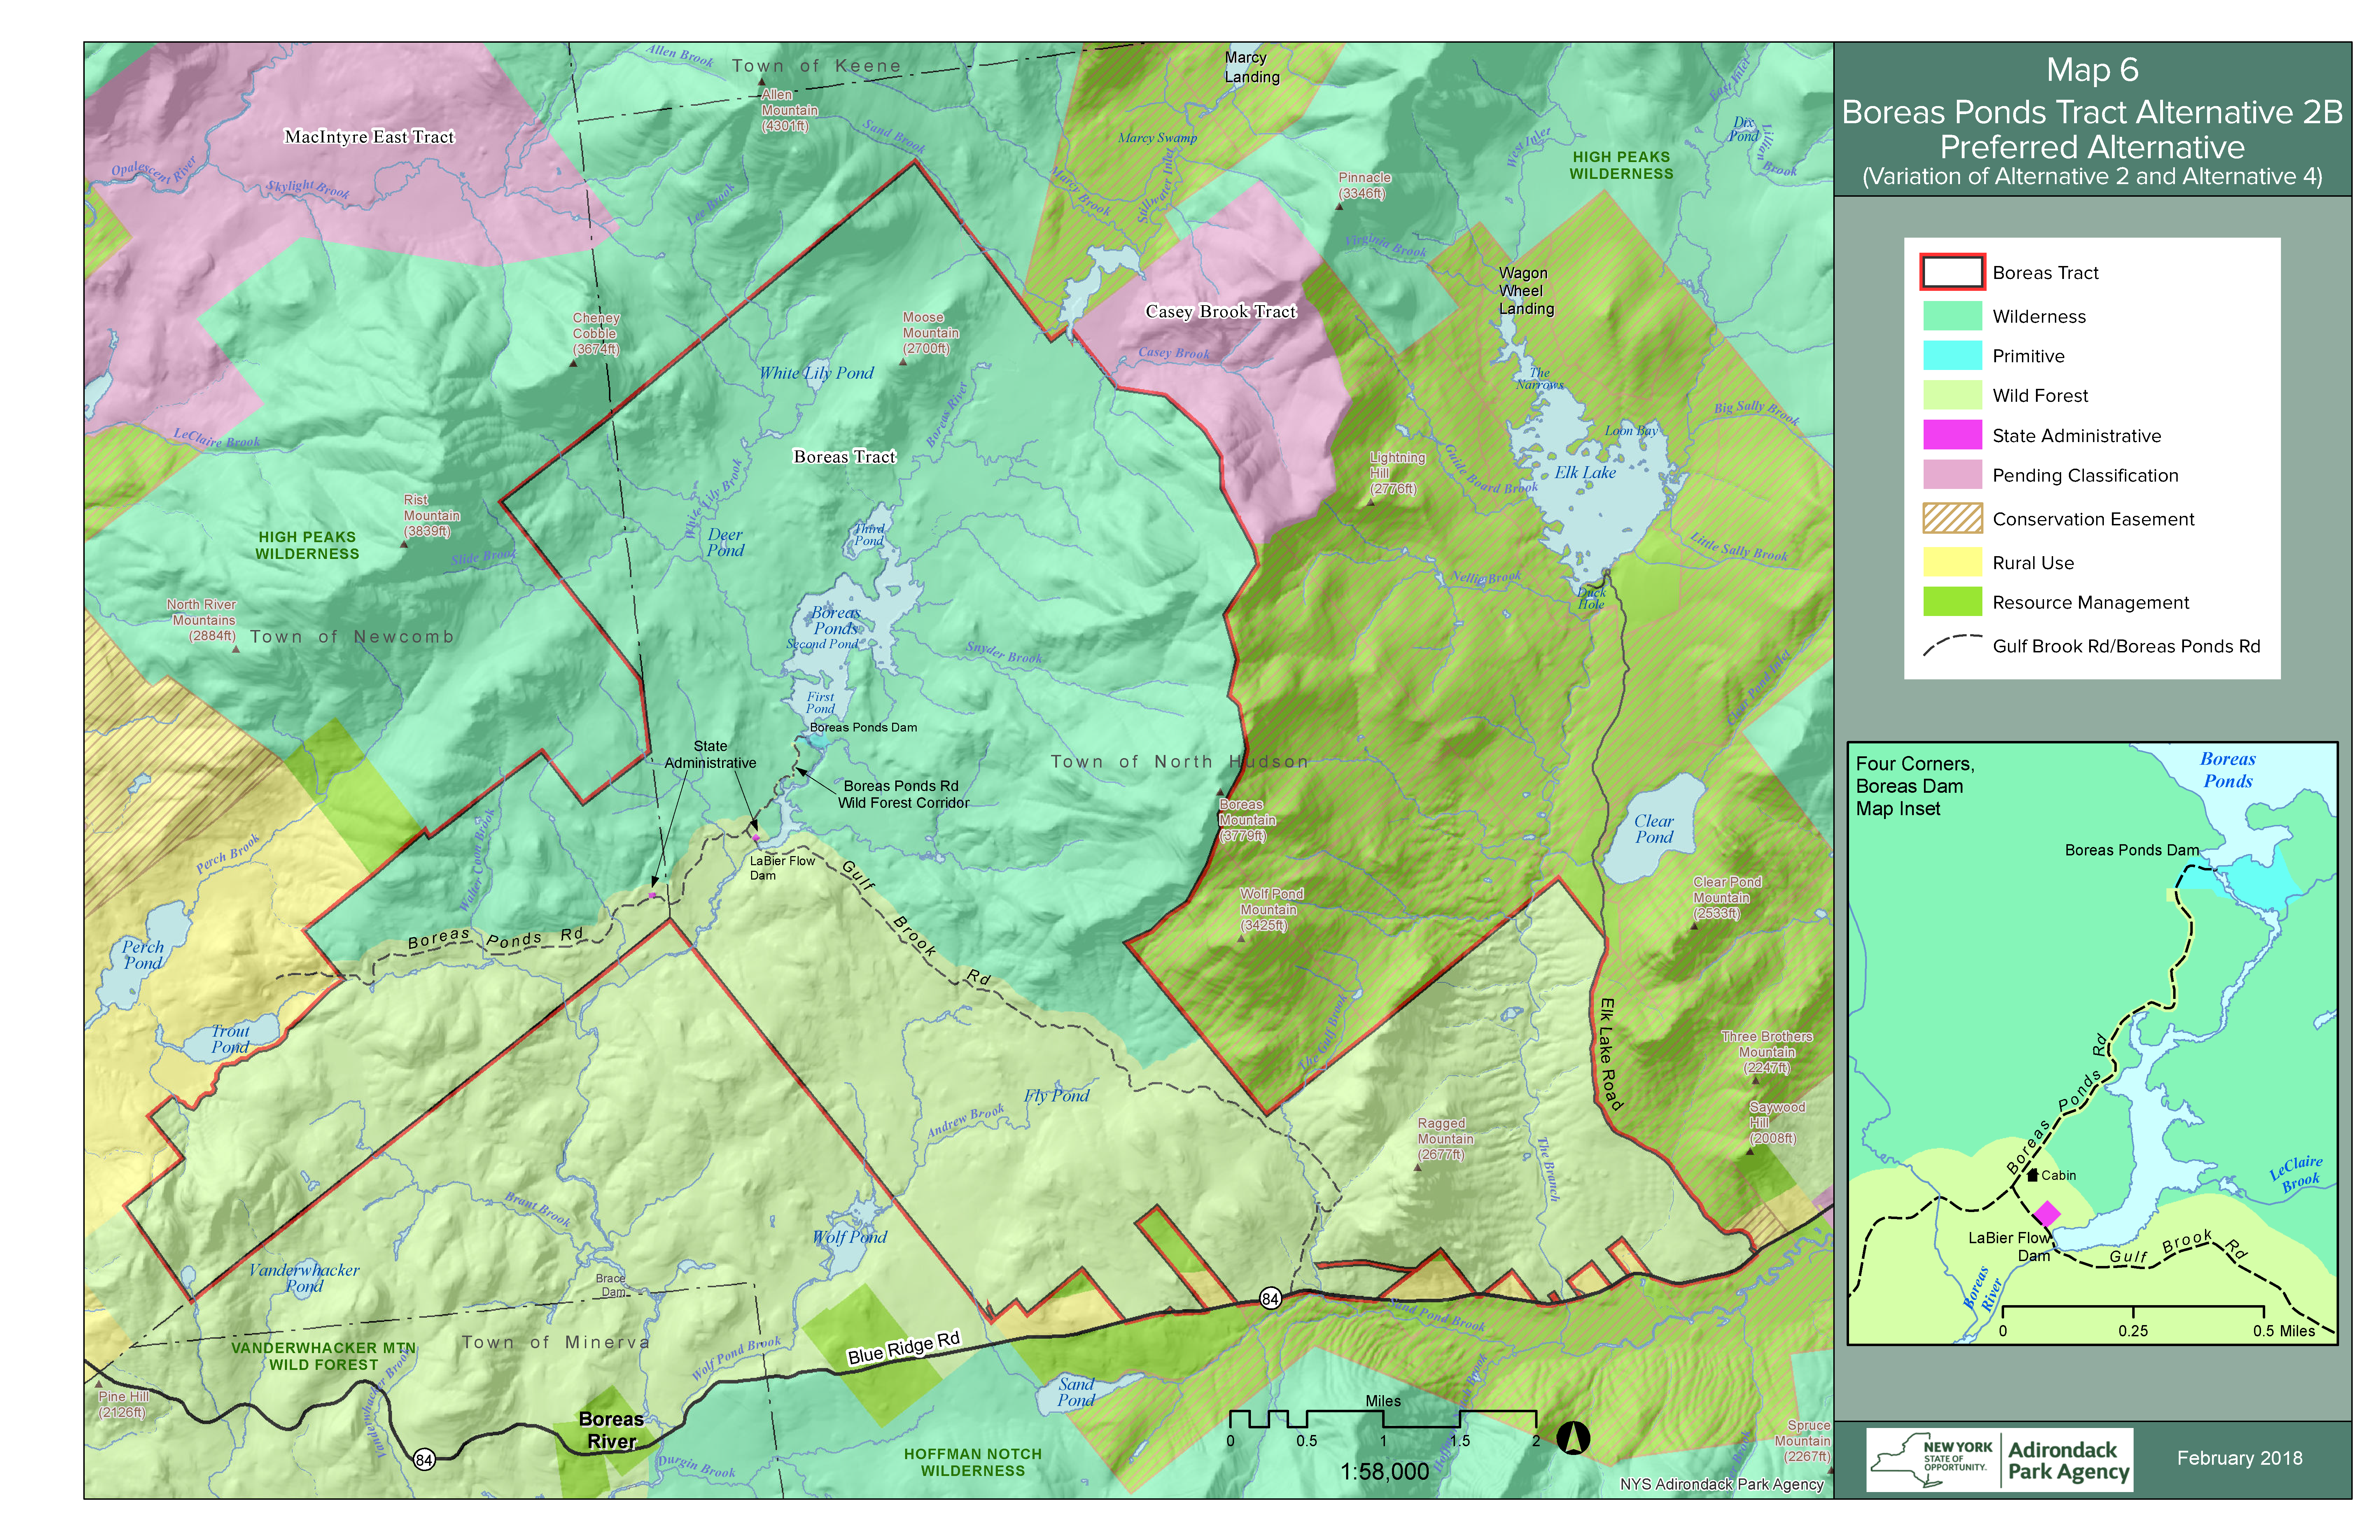 Boreas Ponds region map showing proposed changes